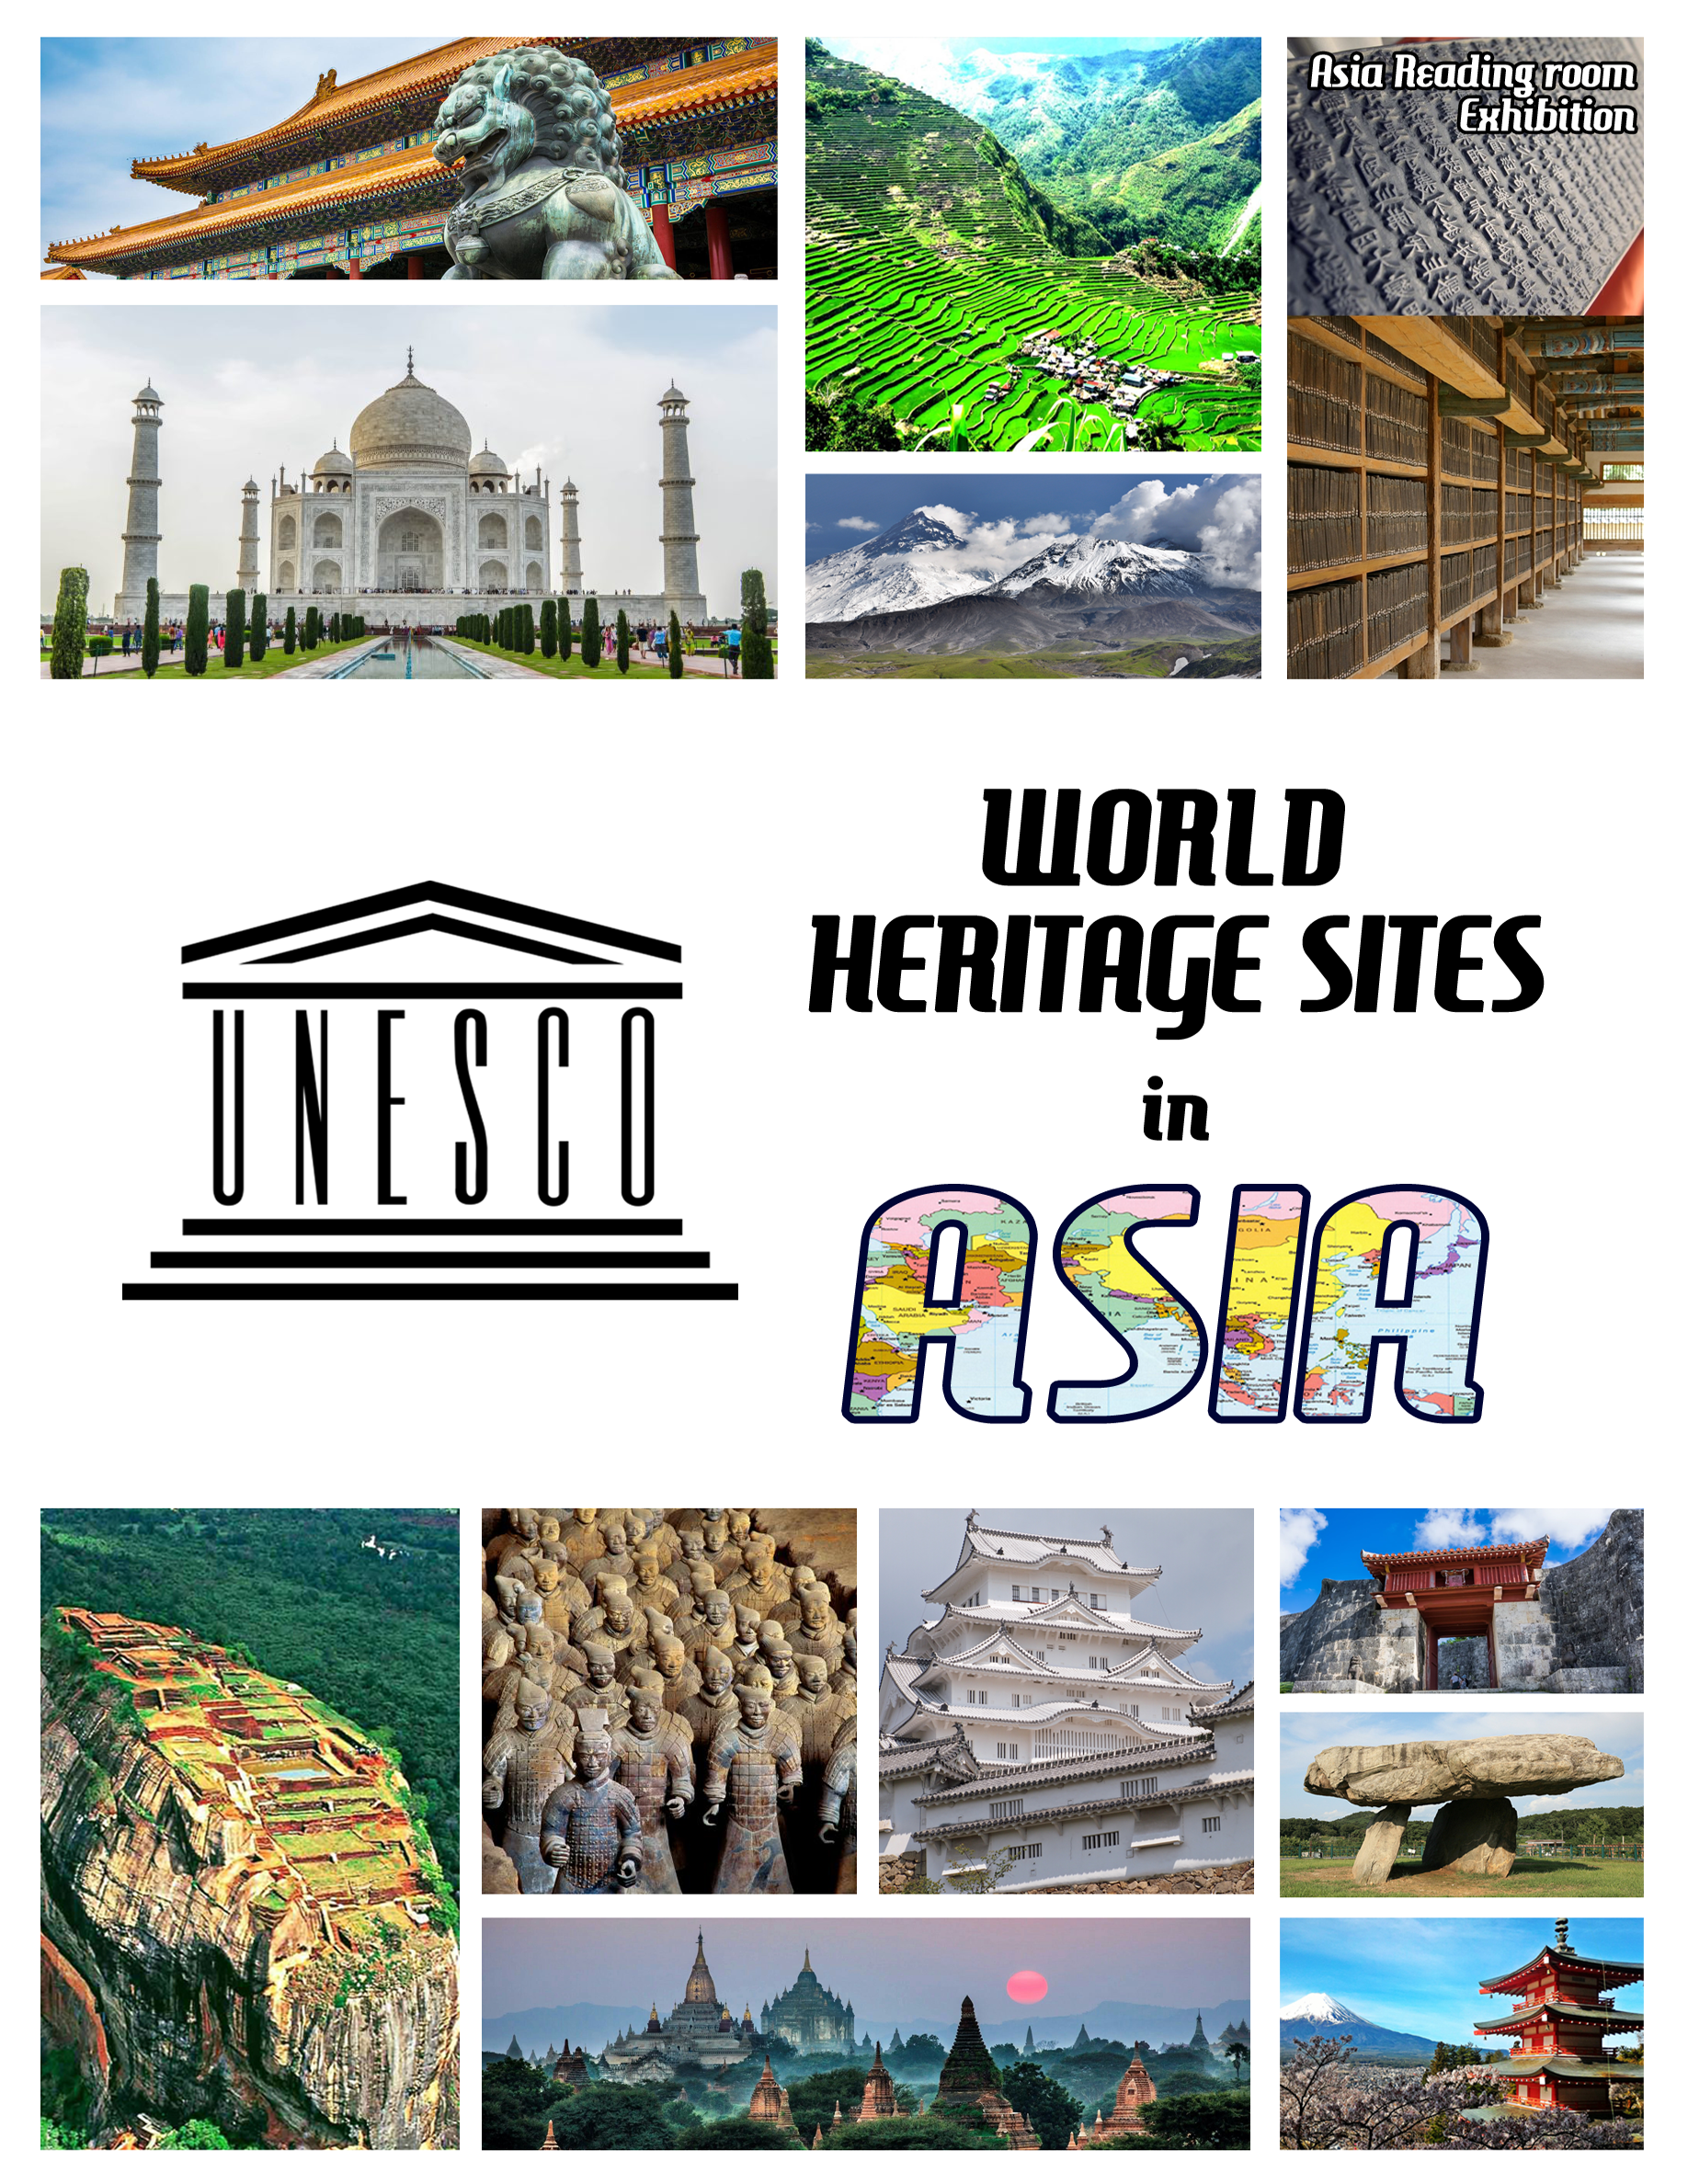 UNESCO World Heritage Sites in Asia